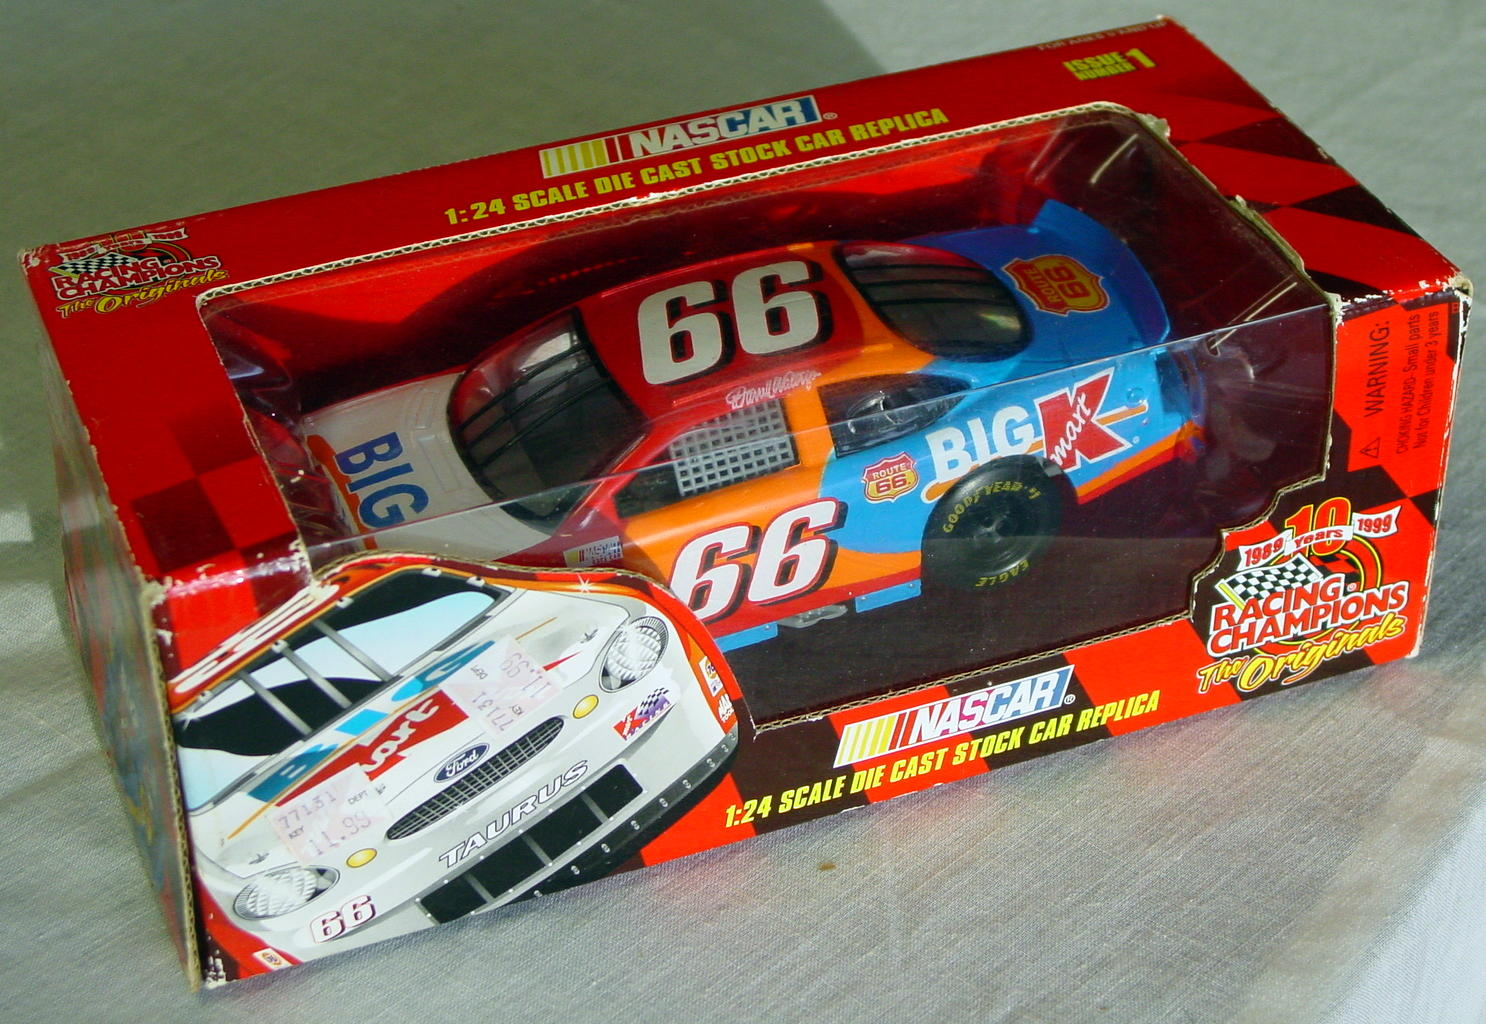 1_24 Scale - RC Big K stocker Darrell Waltrip 66